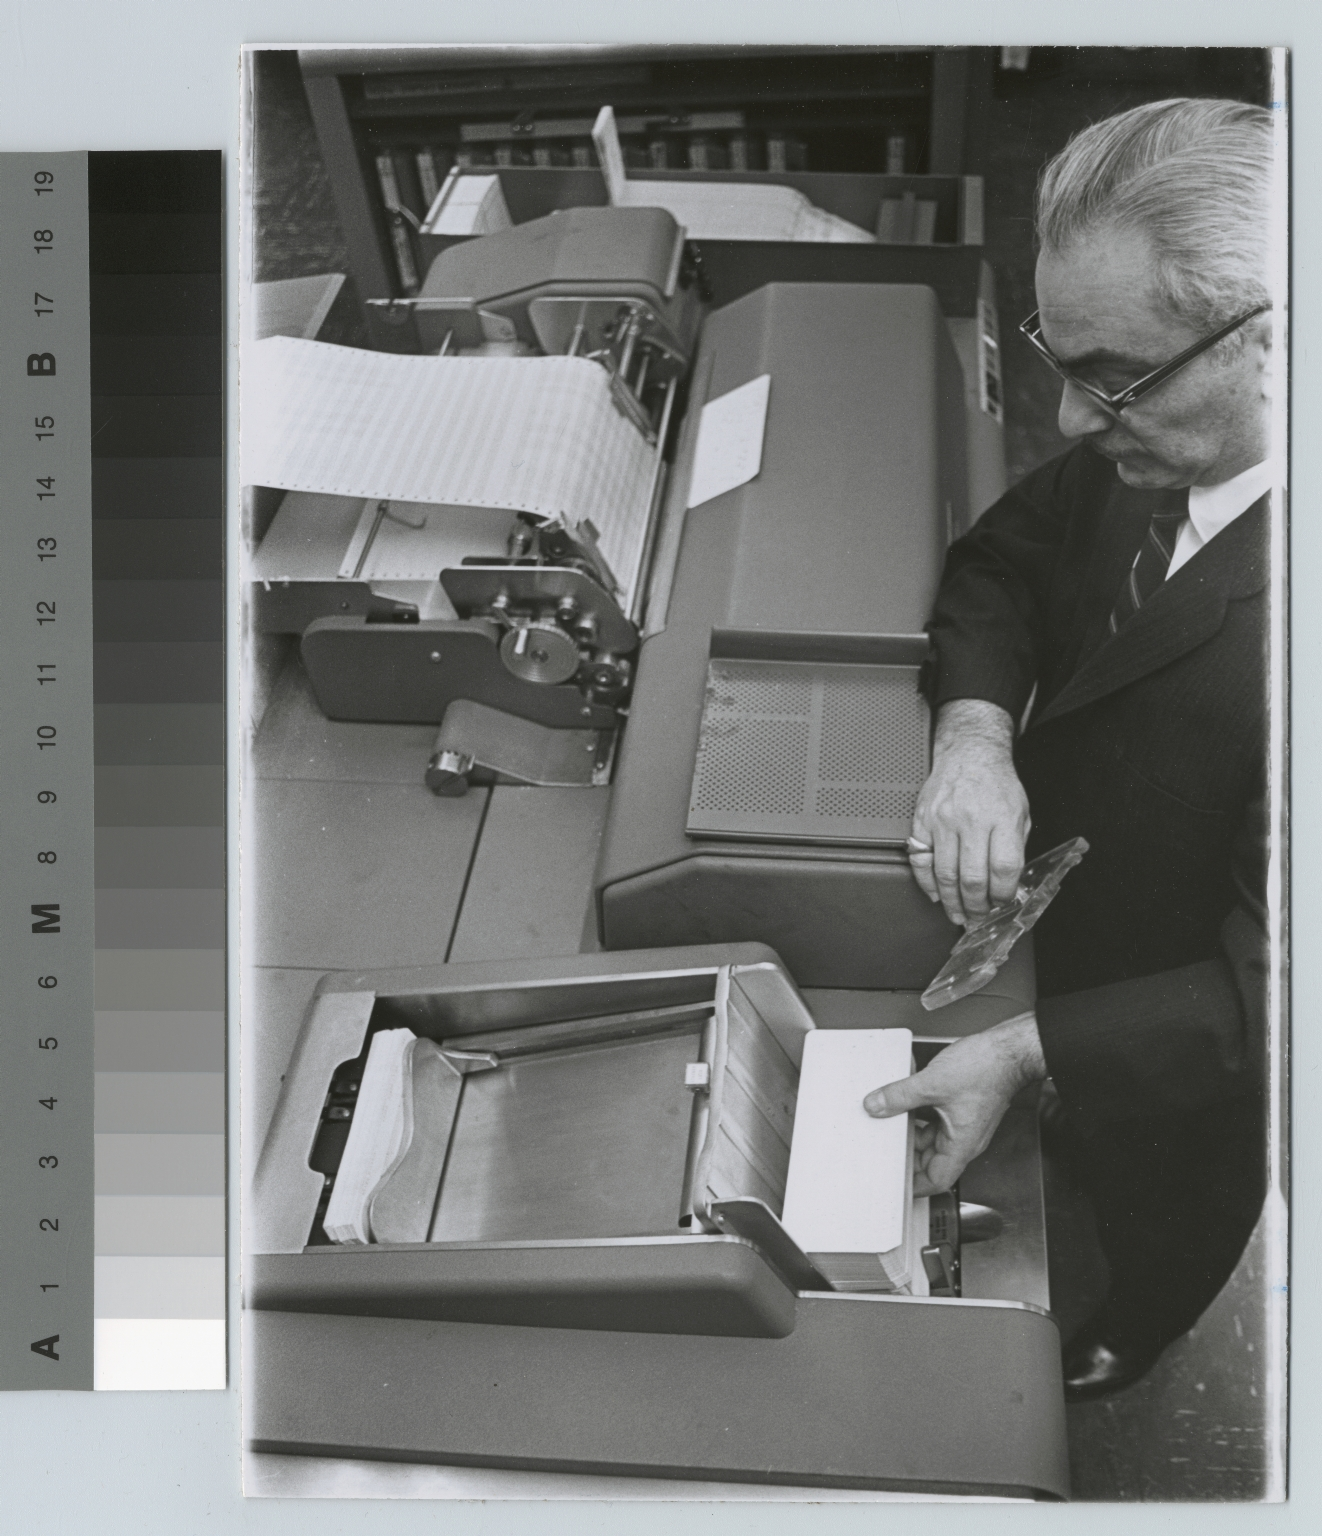 Academics, computer science, Rochester Institute of Technology data processing instructor loading punch cards into a computer, [1968-1980]